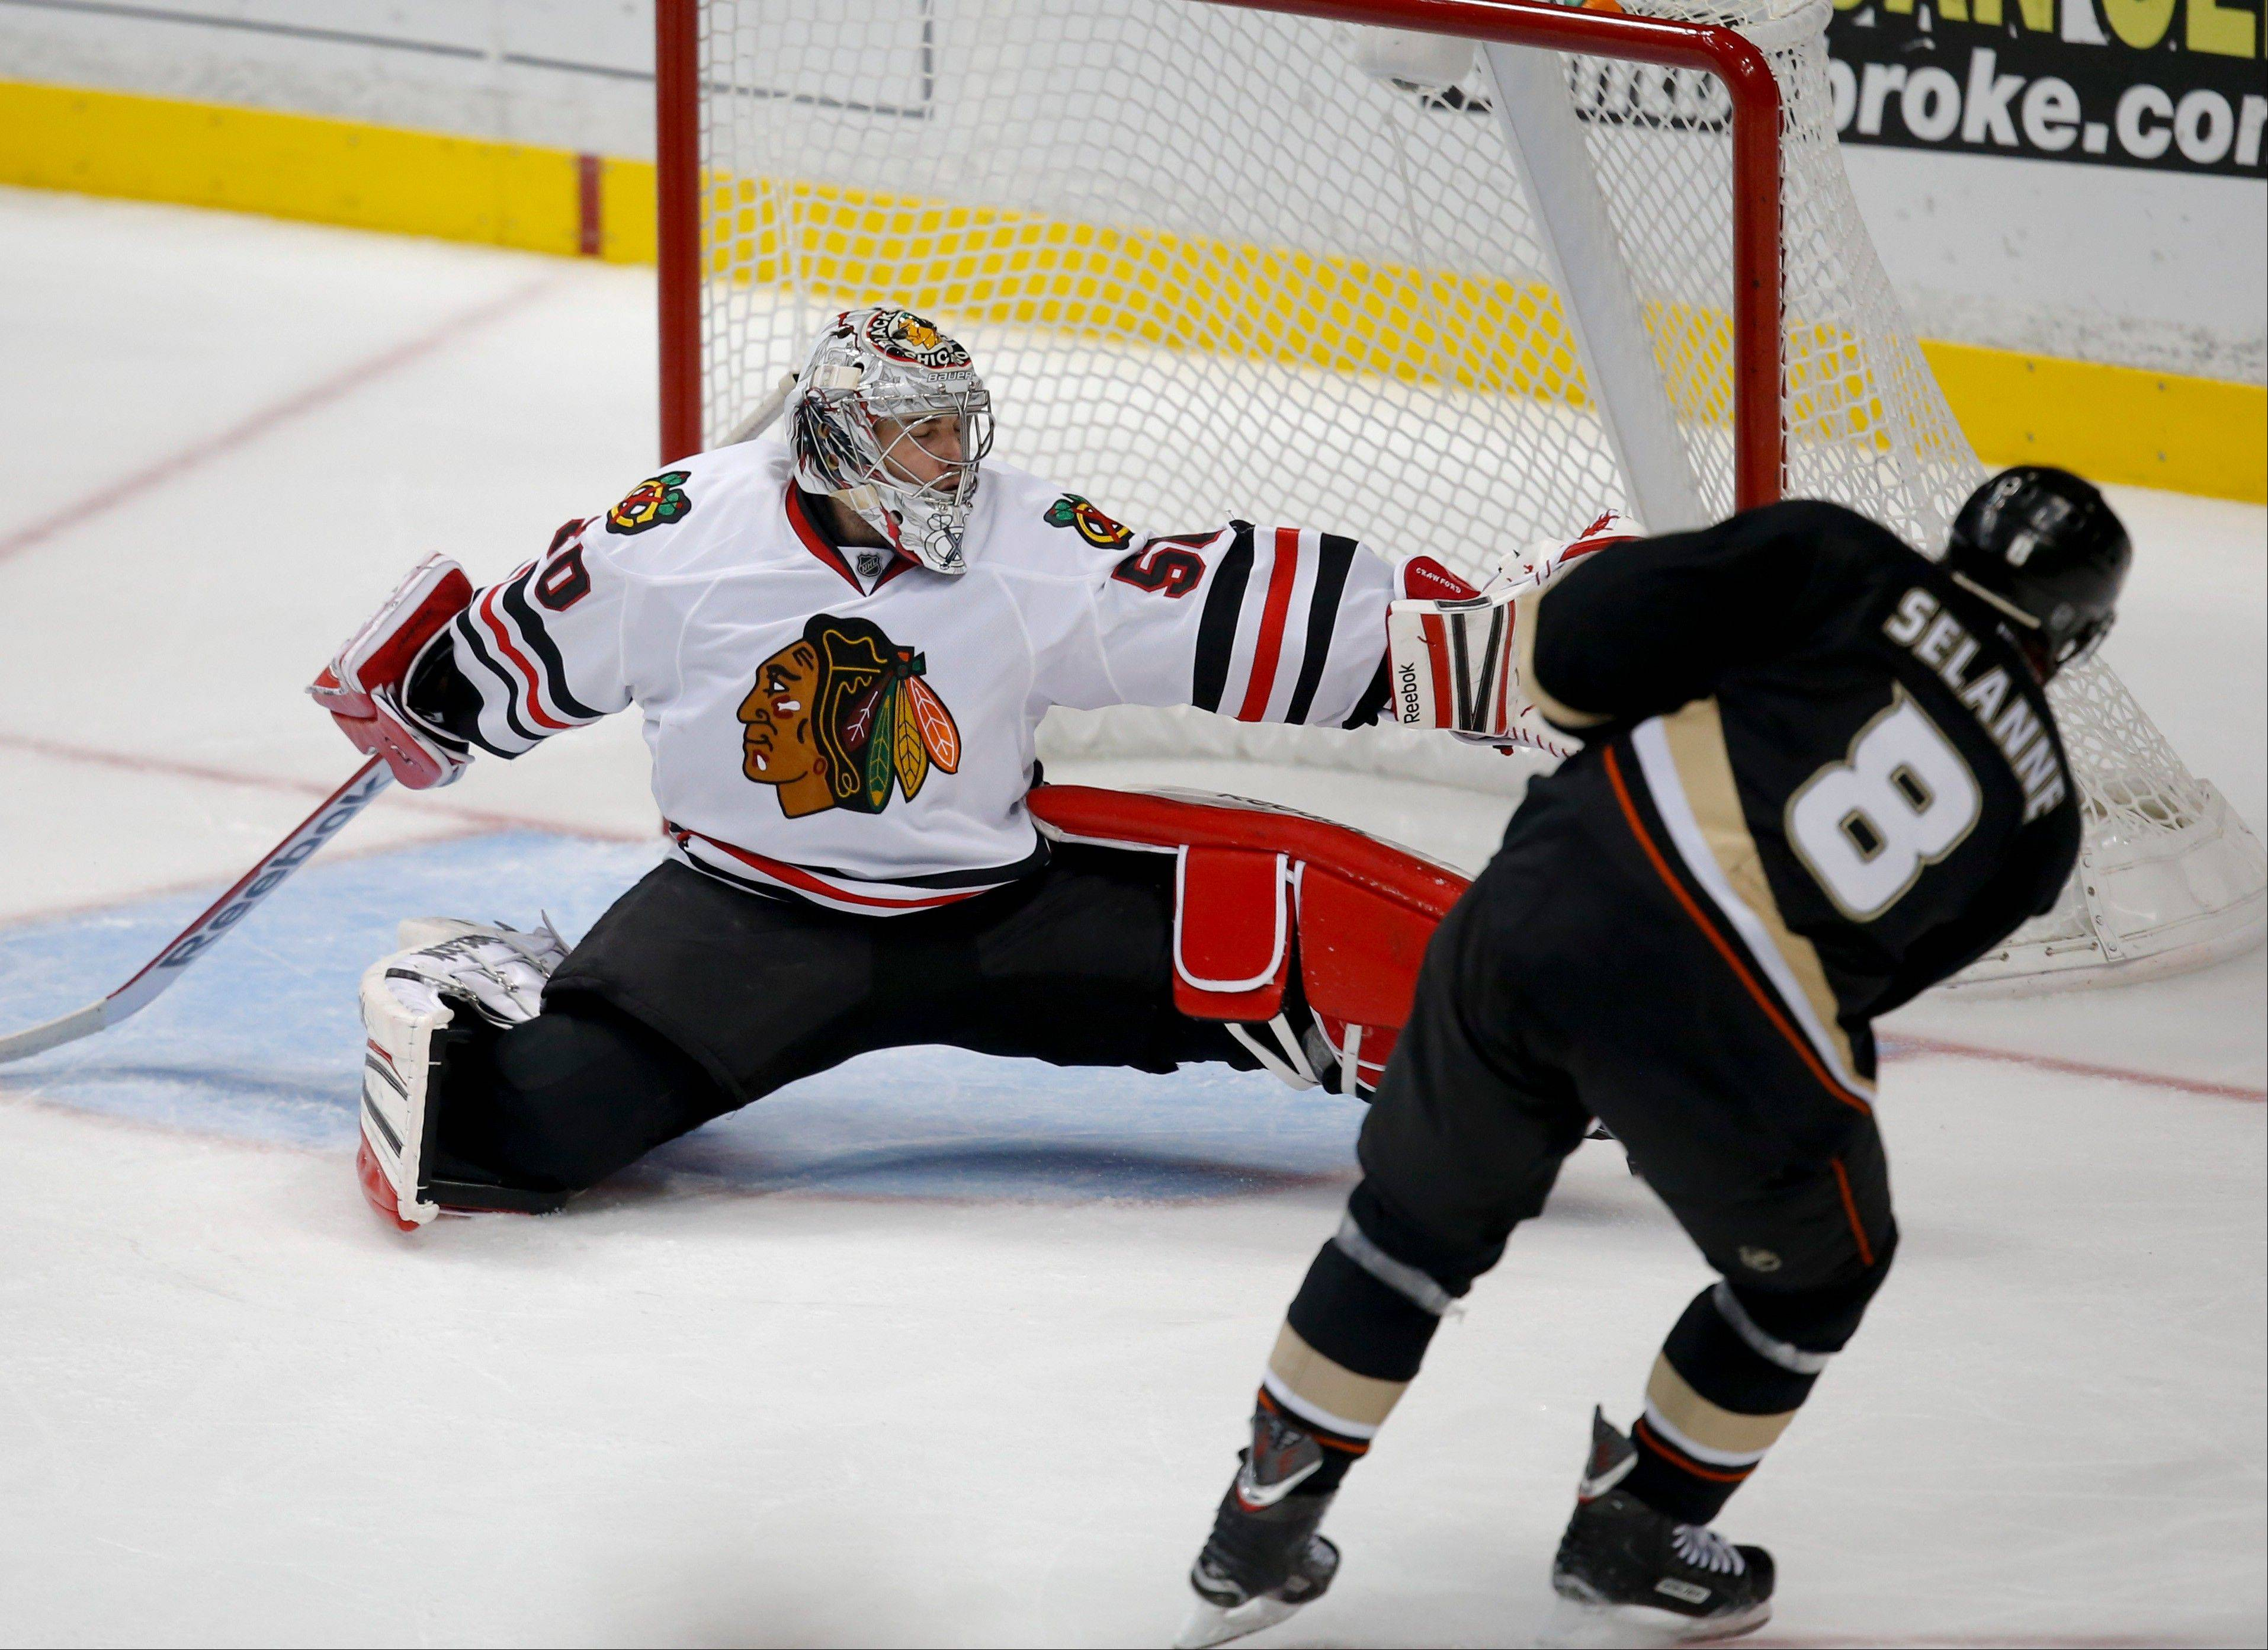 The Ducks' Teemu Selanne, foreground, scores against Blackhawks goalie Corey Crawford during Anaheim's 3-goal third period Wednesday night.